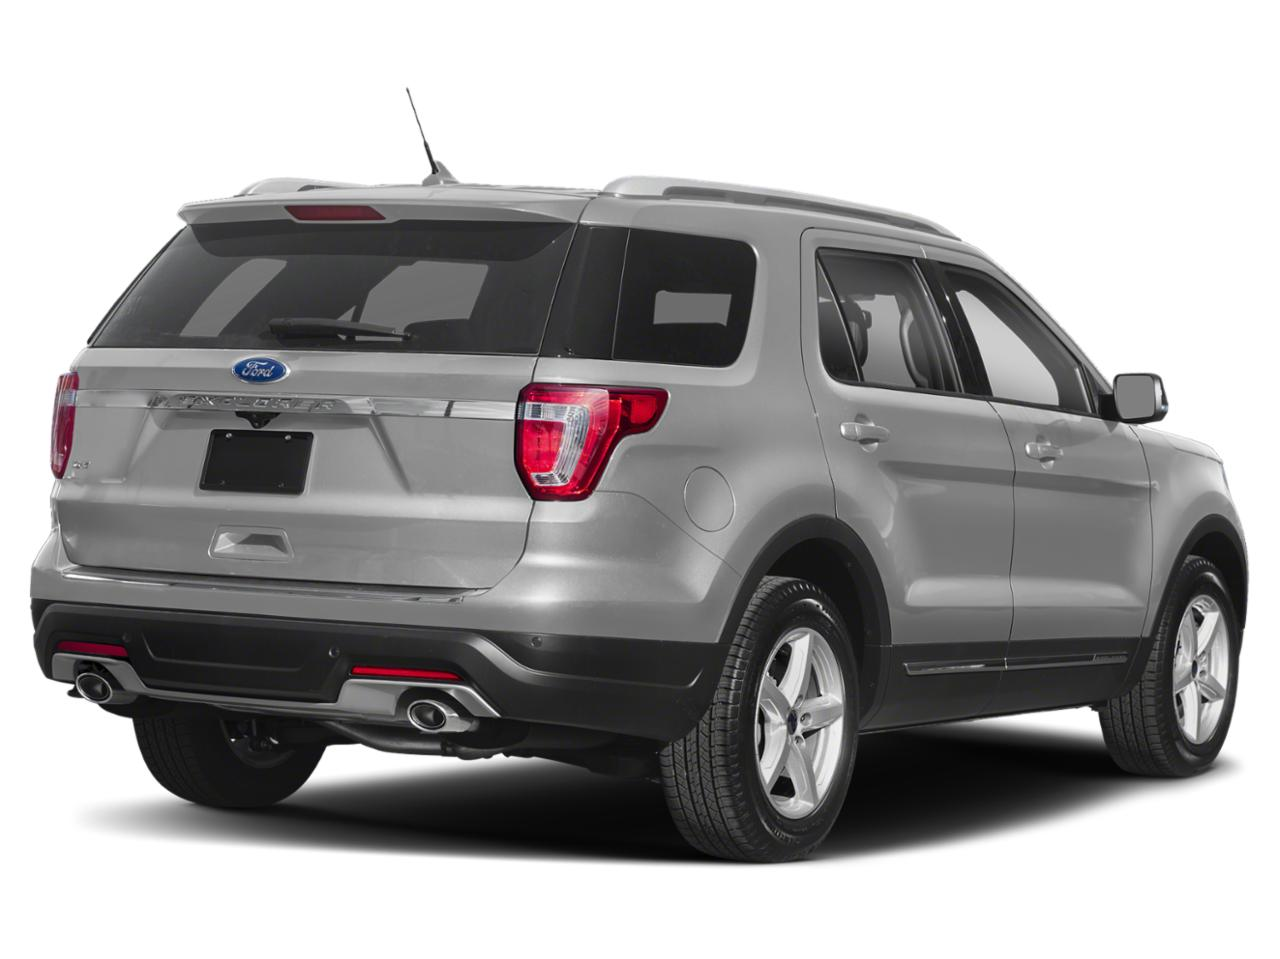 2019 Ford Explorer XLT SUV Slide